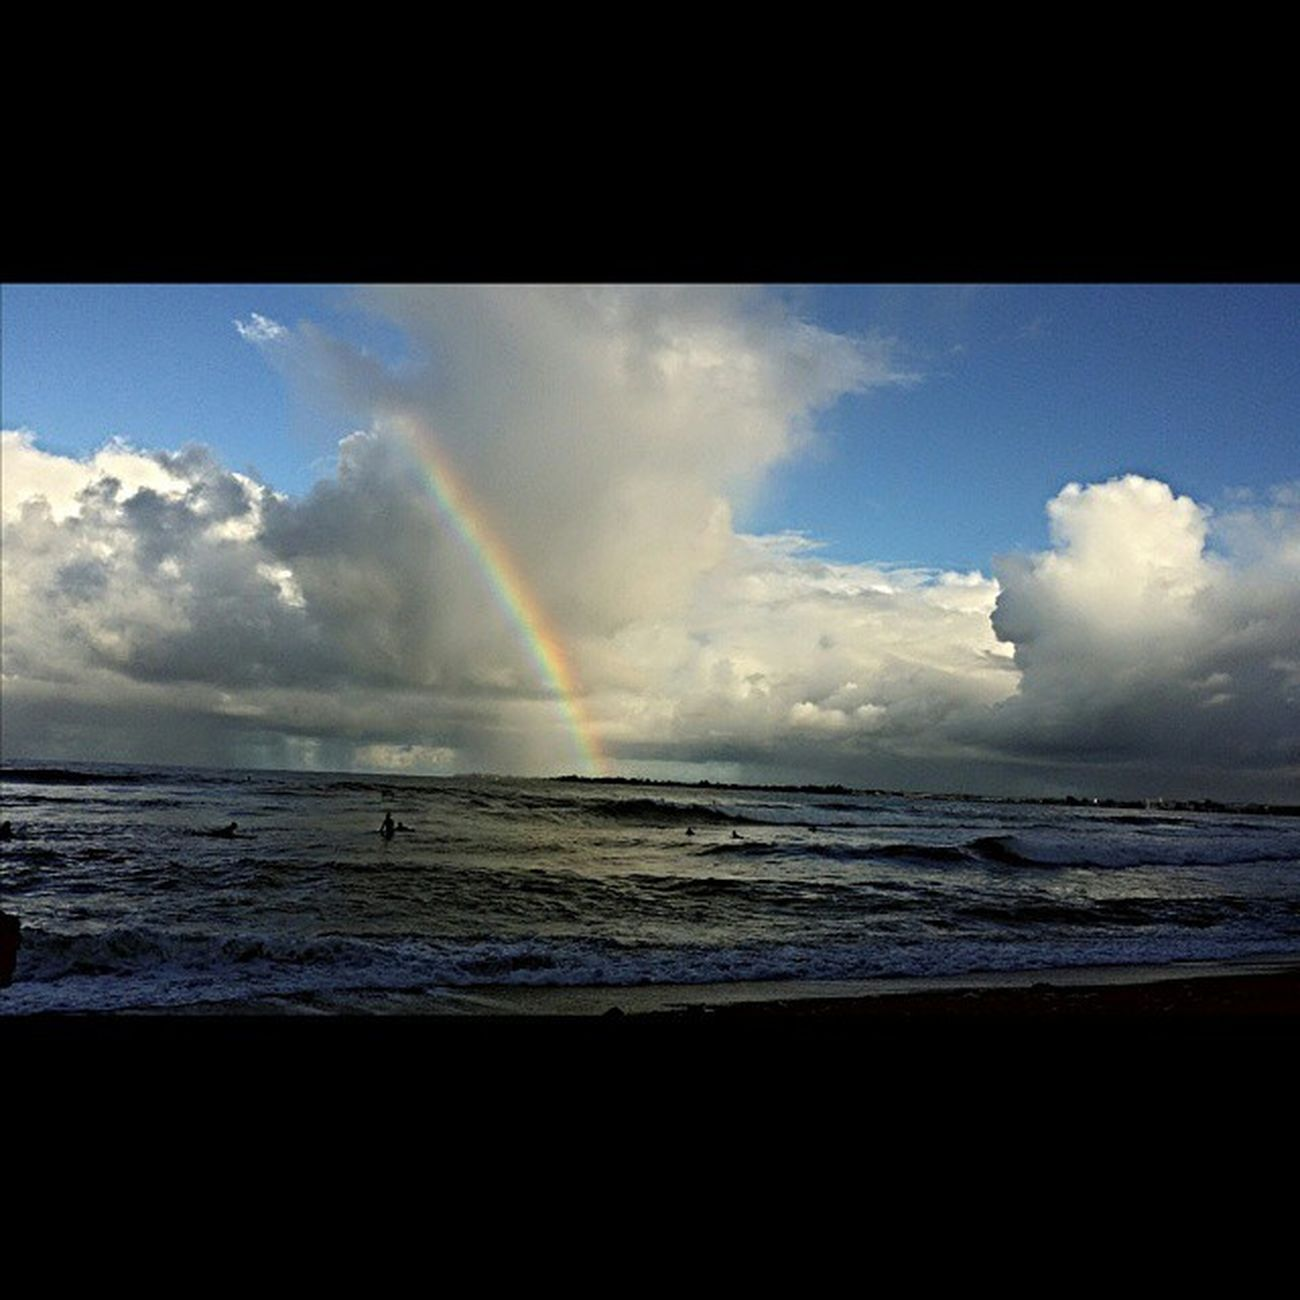 Mahalo ke akua another beautiful day! Appreciation HiLife Honolii Rainbows Surf Simple Things Hawaii 808love